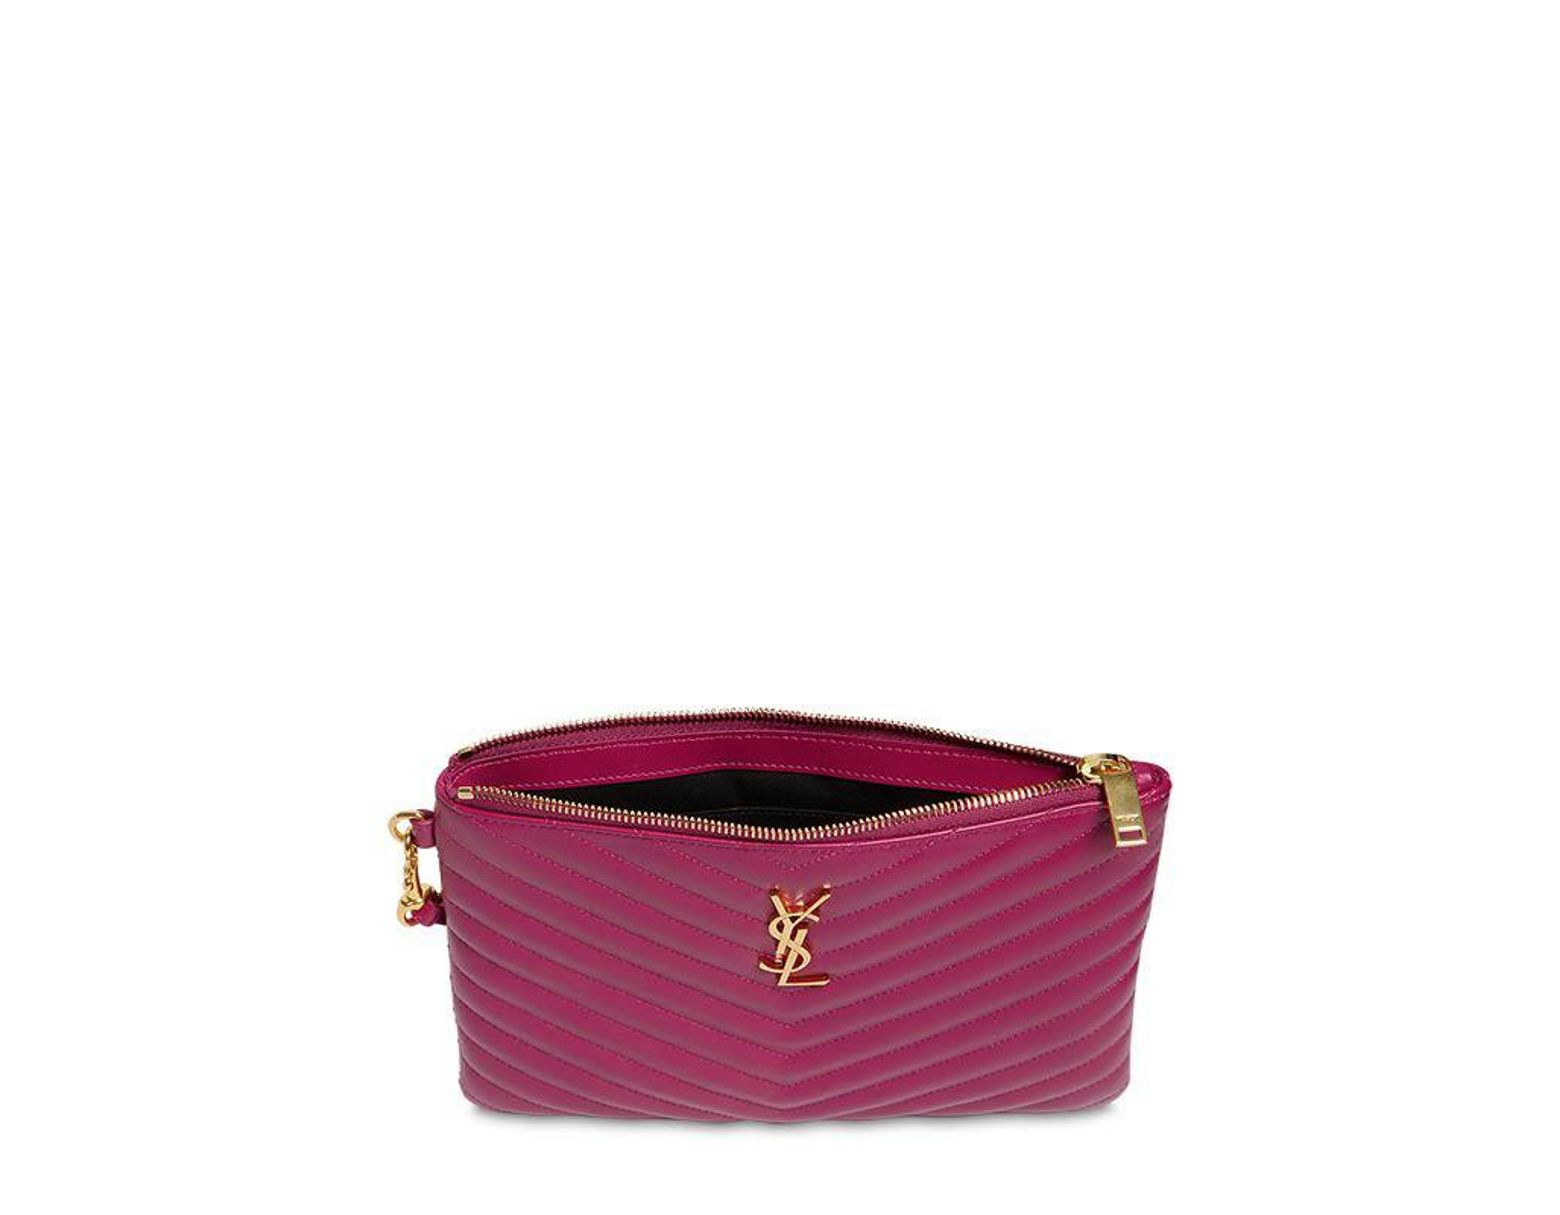 a15c7da715 Lyst - Saint Laurent Monogram Quilted Leather Pouch in Purple